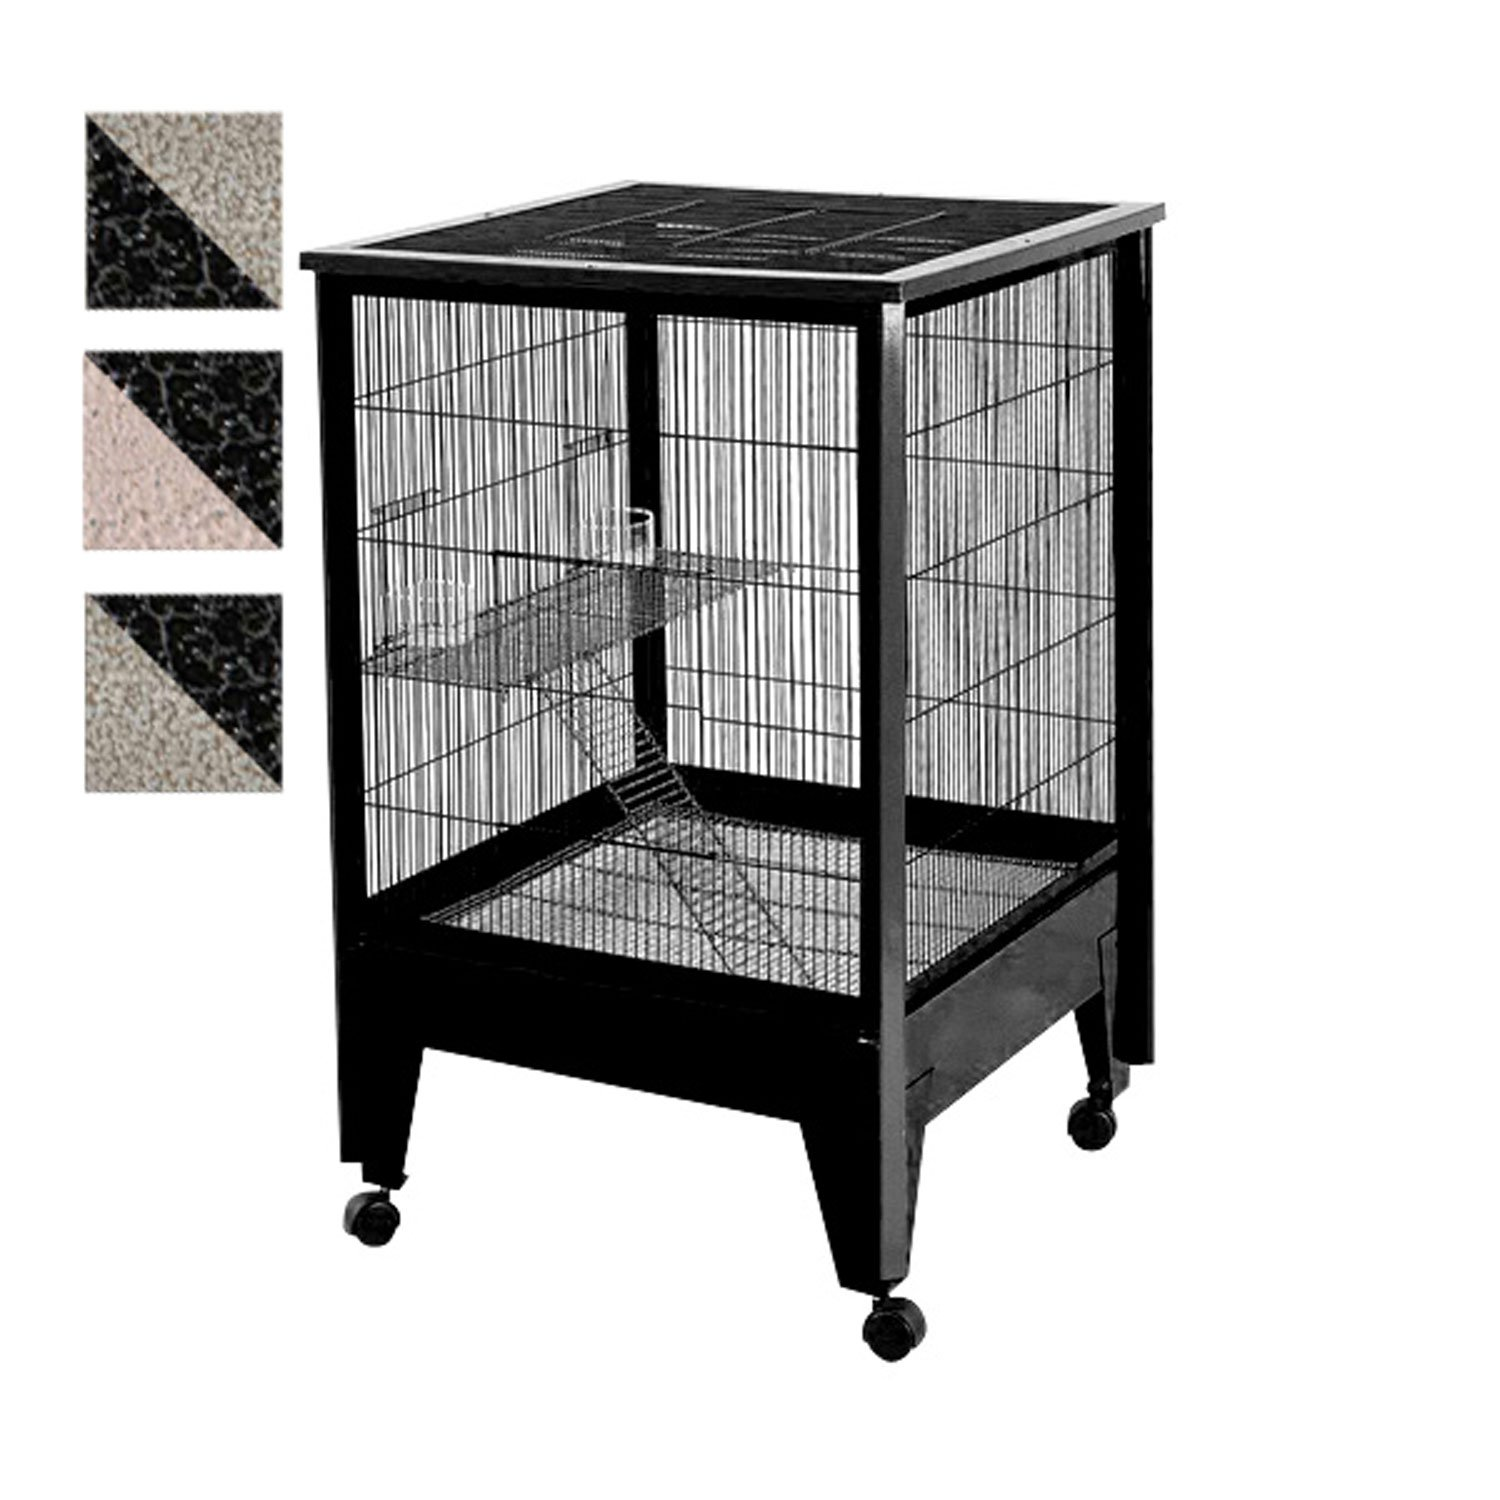 A&E Cage Company 2 Level Small Animal Cage on Casters in Black